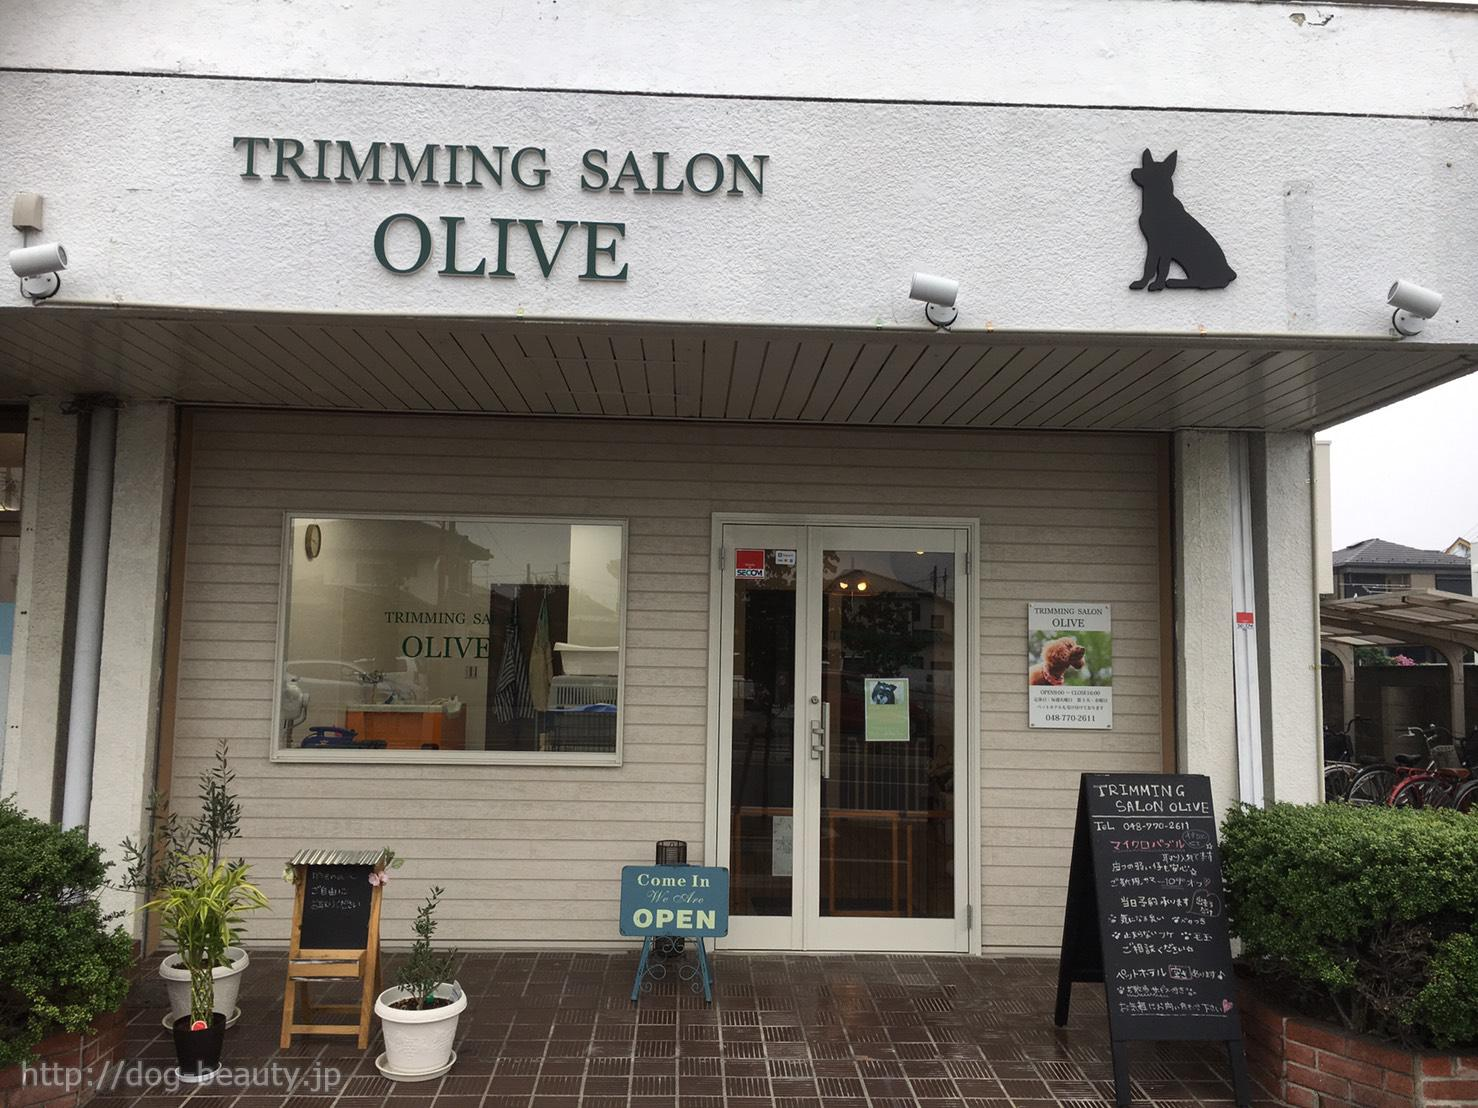 TRIMMING SALON OLIVE